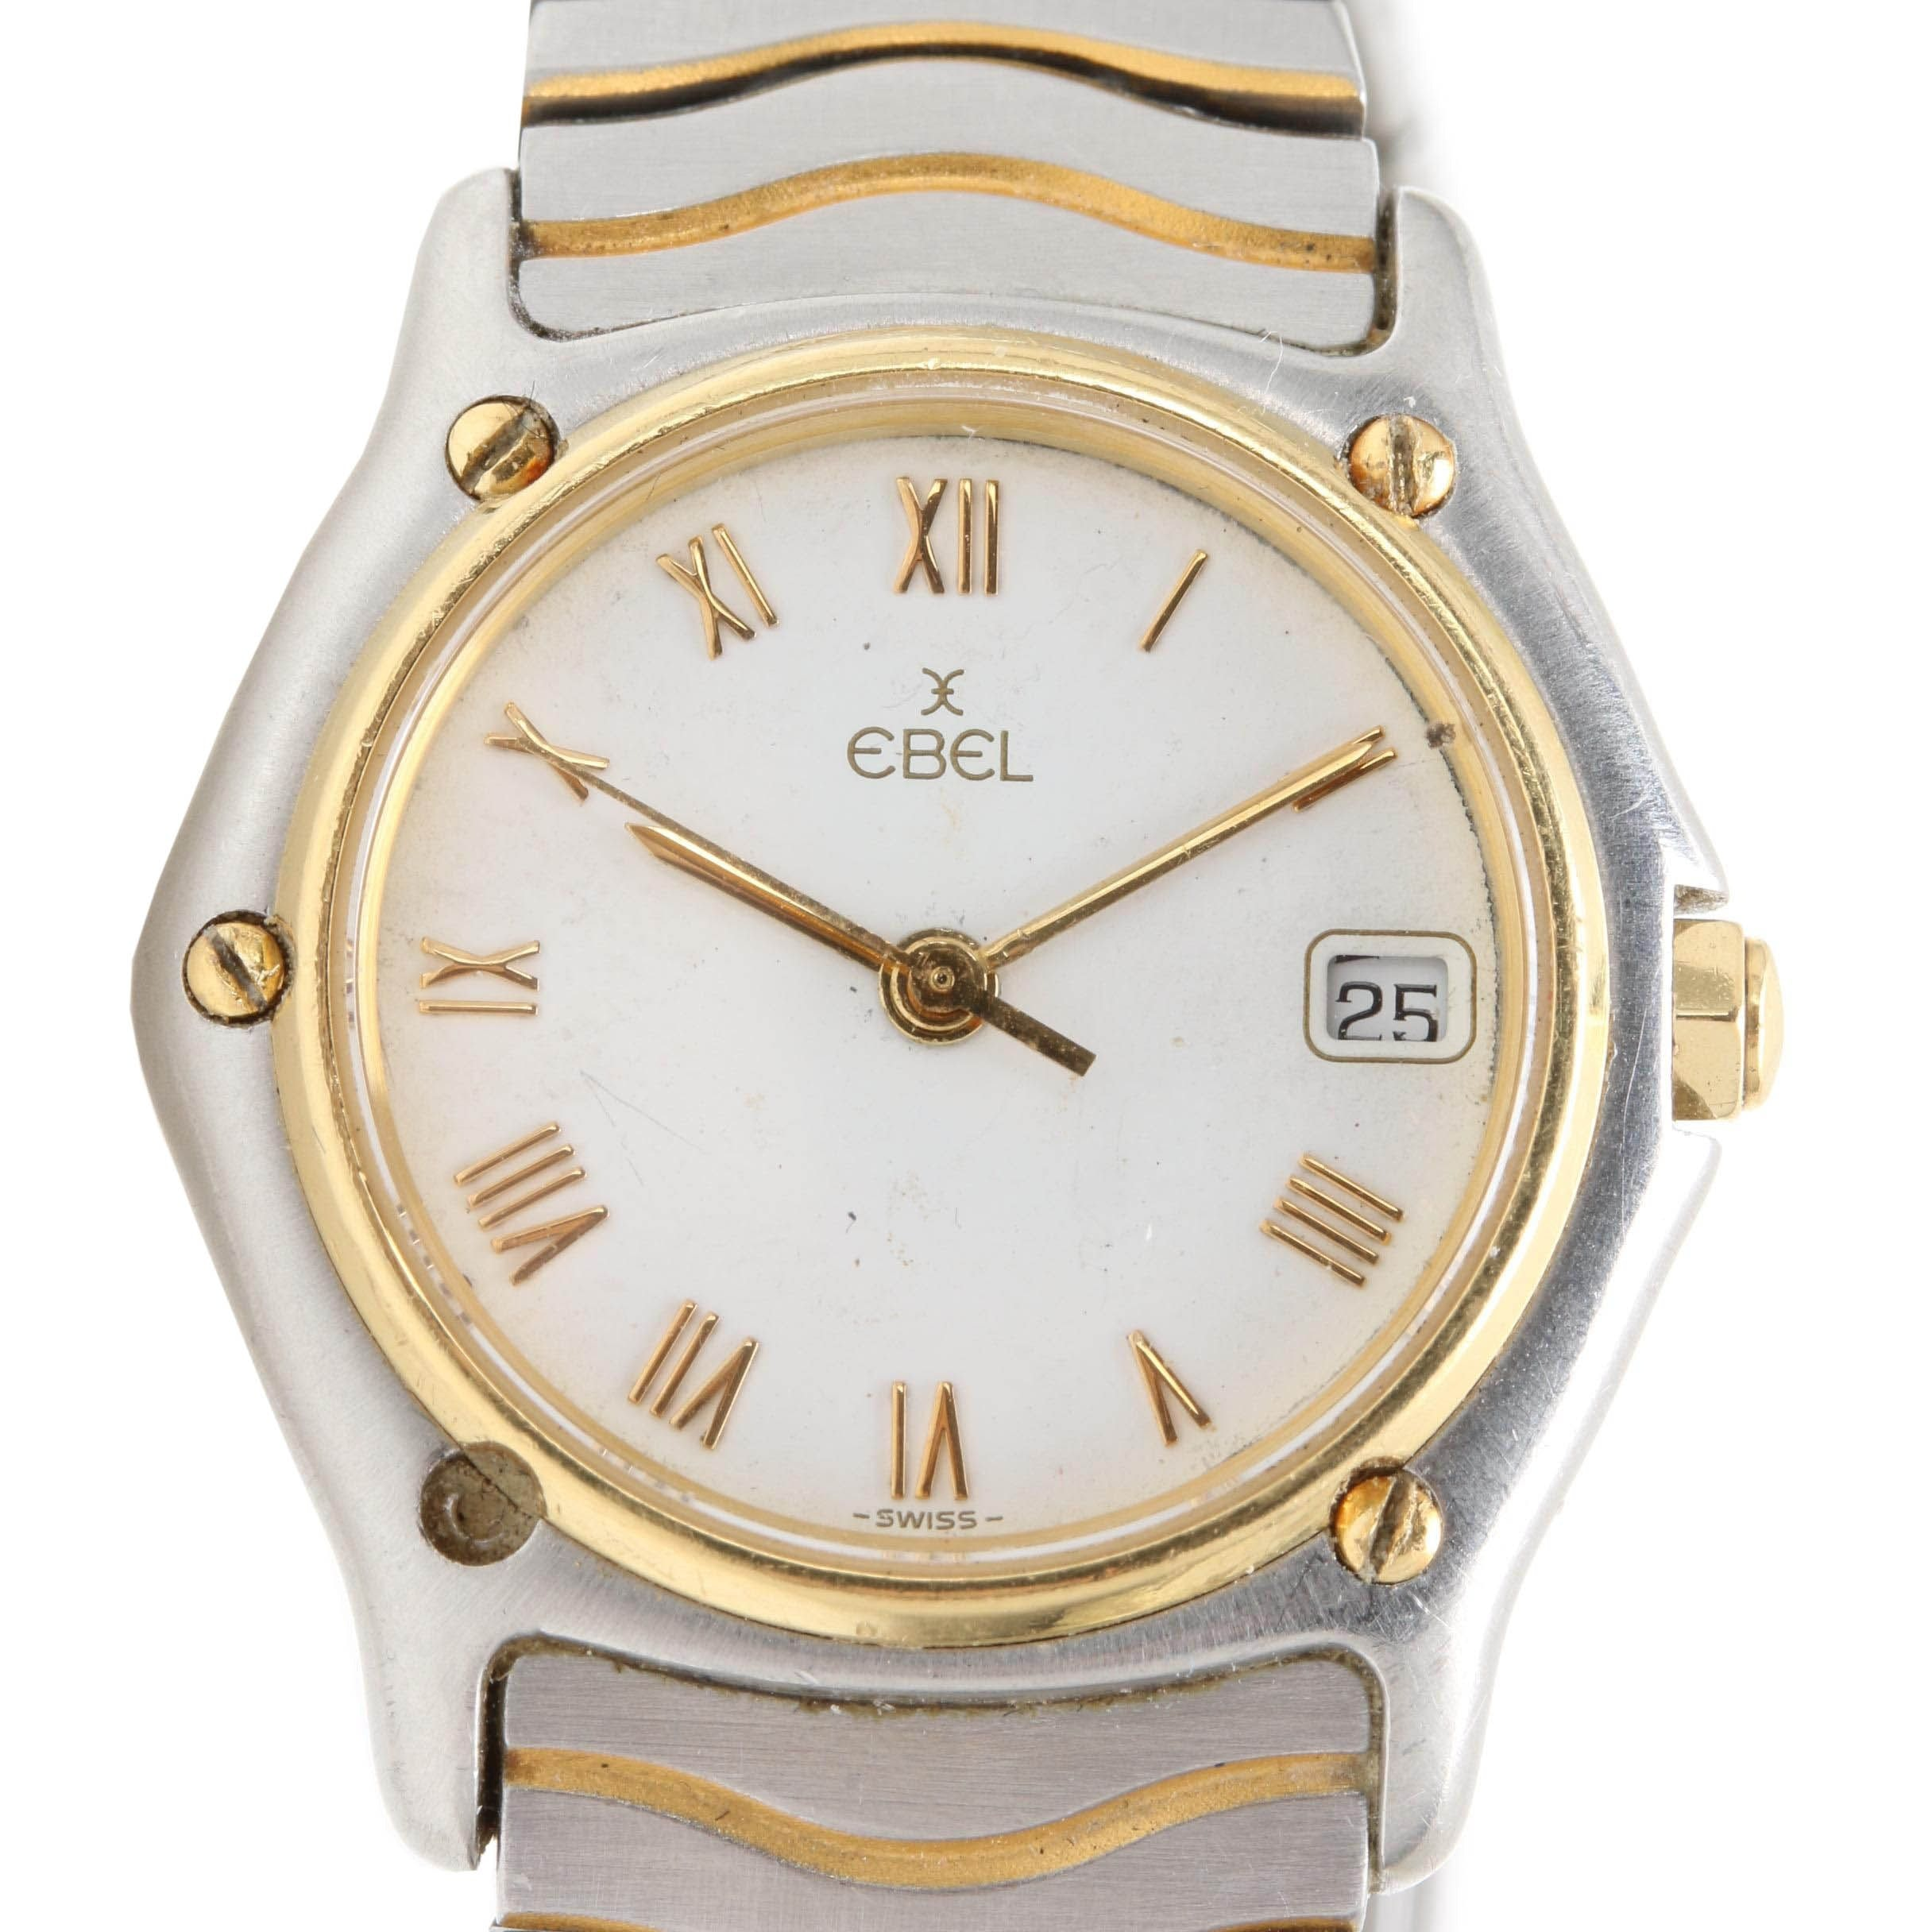 Stainless Steel and 18K Yellow Gold Ebel Wristwatch